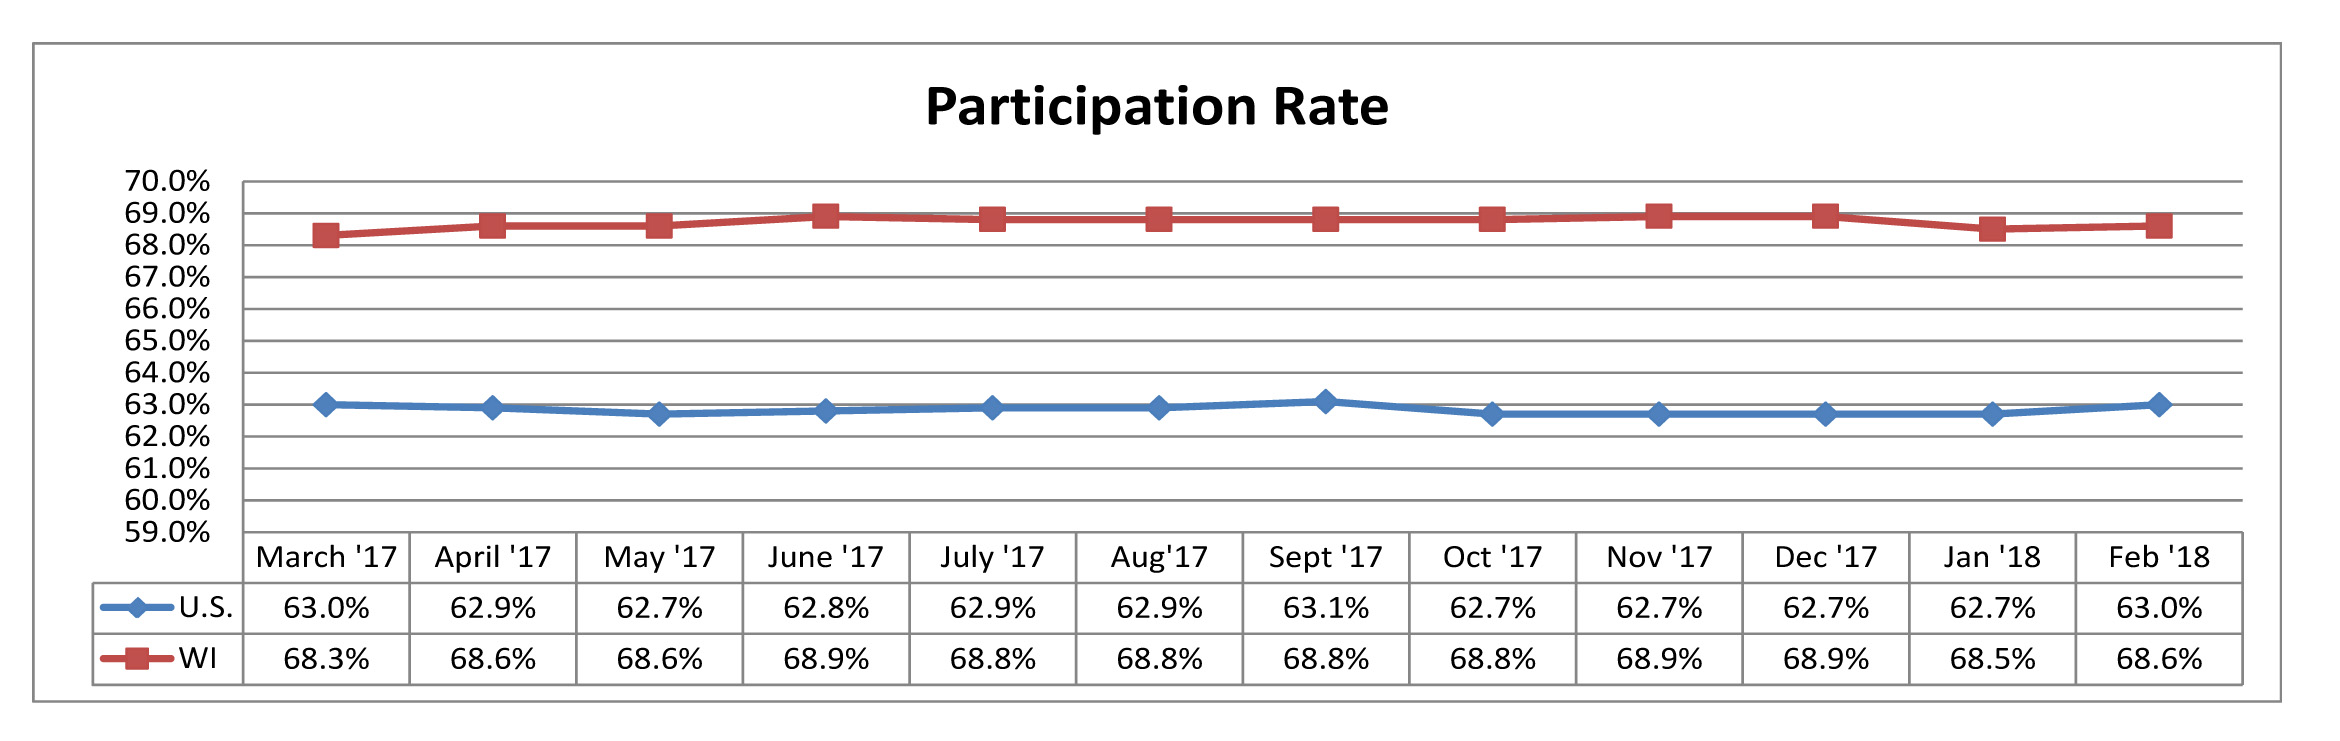 February 2018 Participation Rate